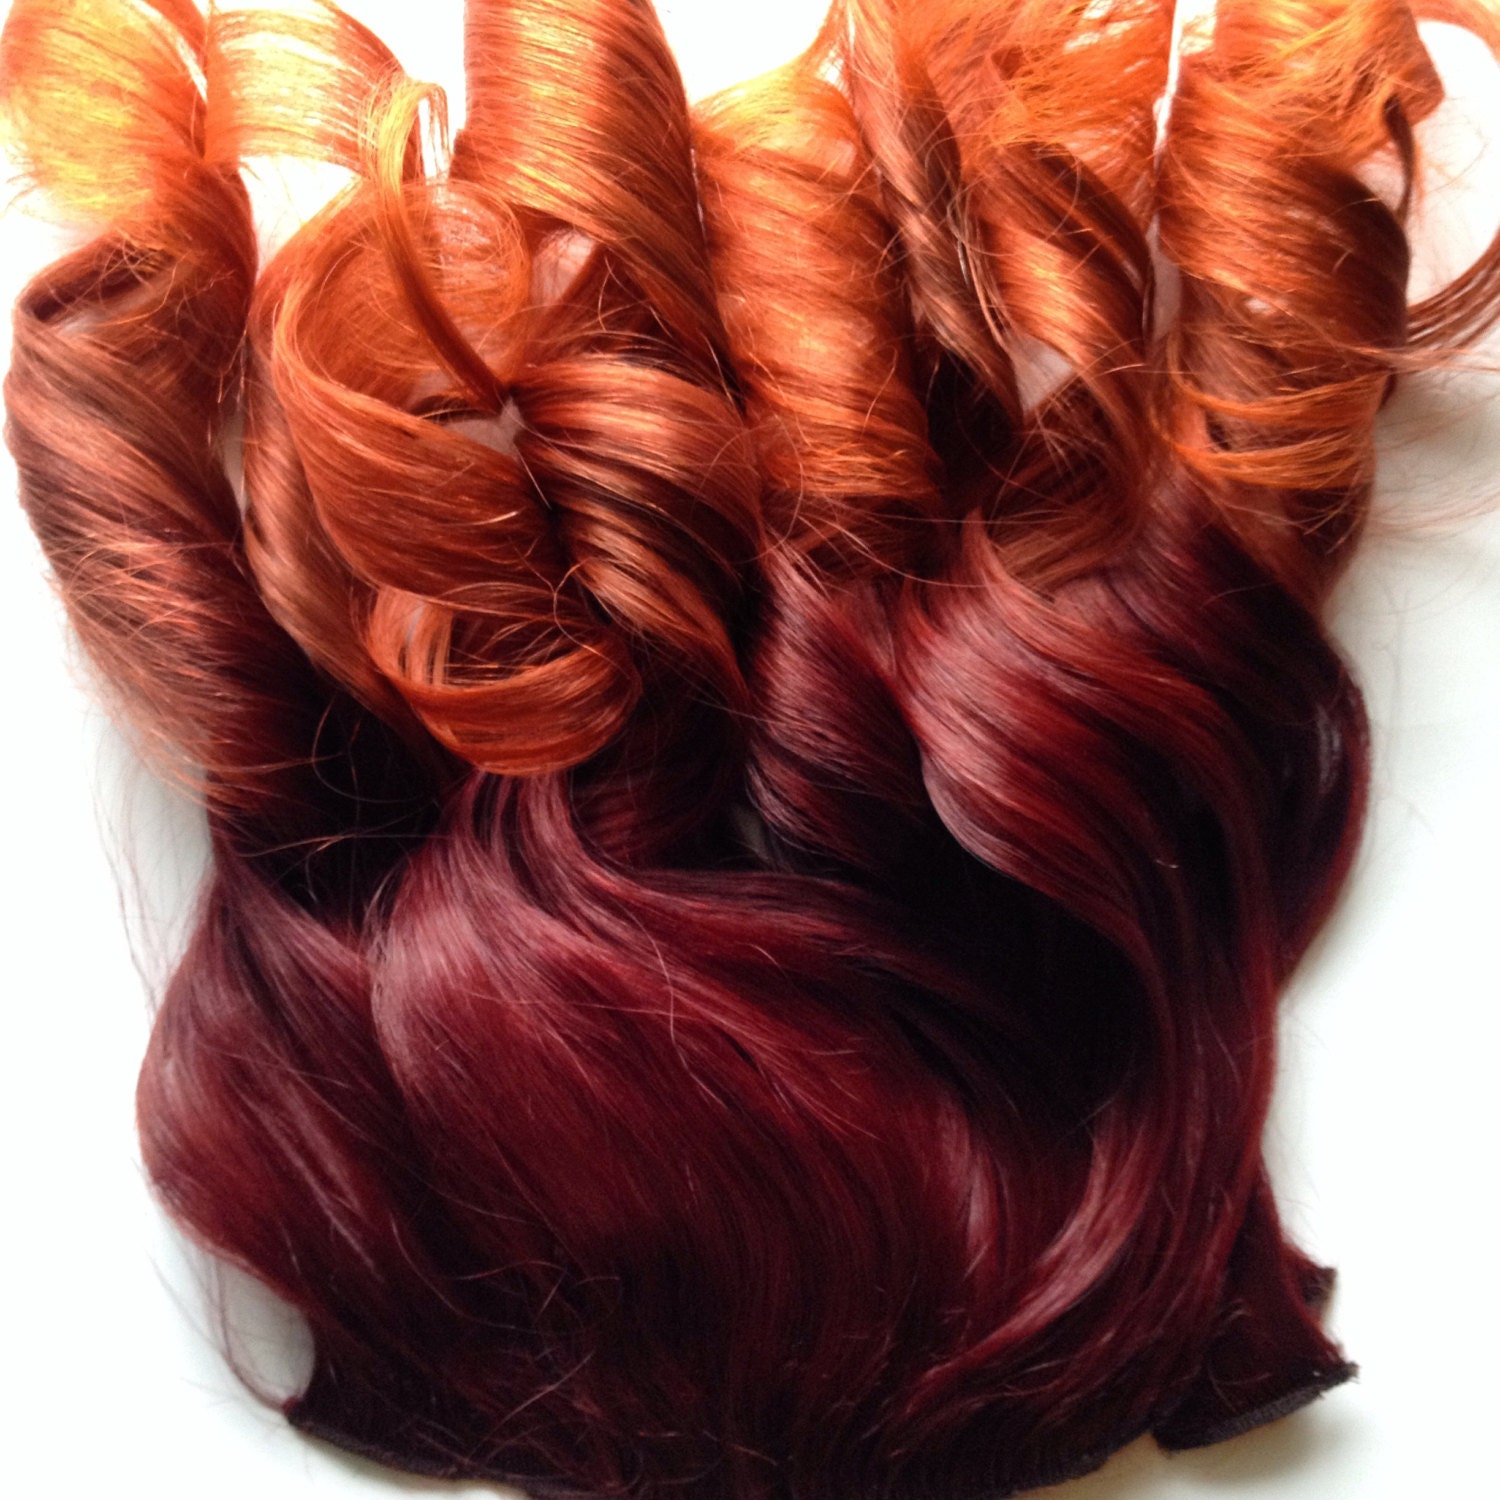 Ombre Hair Bright Red Auburn Burgundy To Gold Orange Clip Fade Etsy